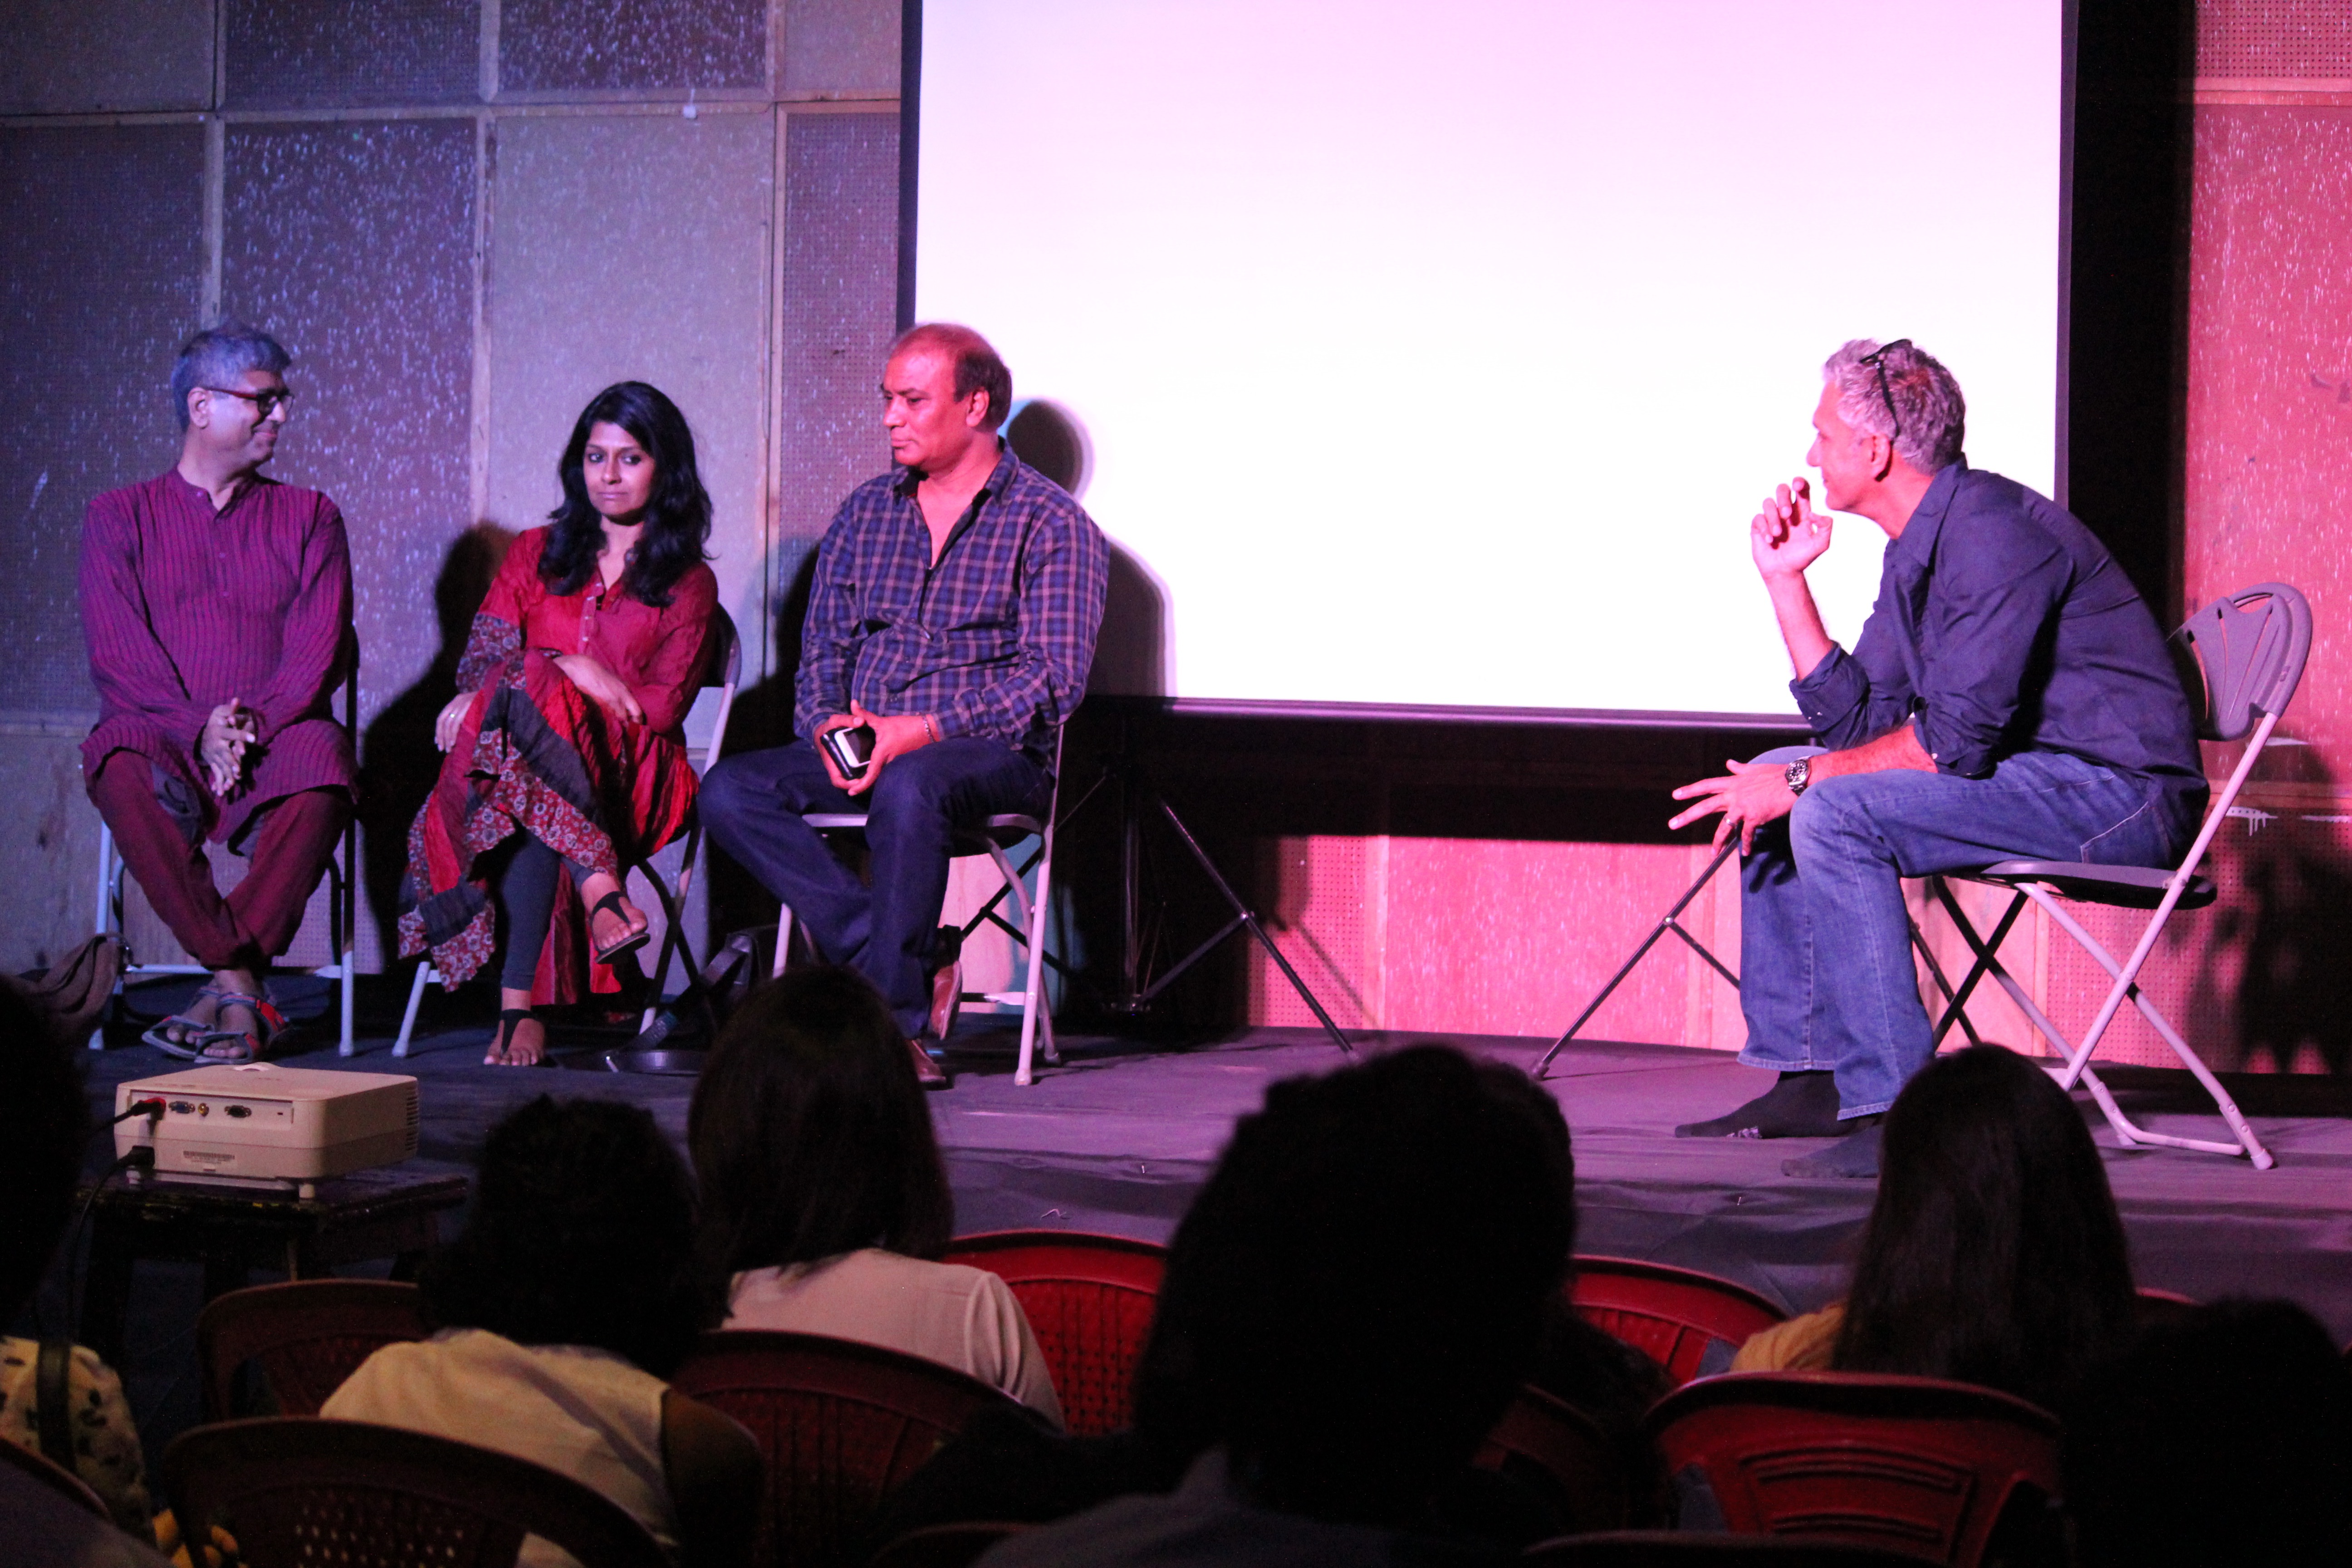 Dalip Sondhi, Director SIIDA with Mahesh Dattani, Nandita Das and Vipin Sharma at an acting demo session in Mumbai